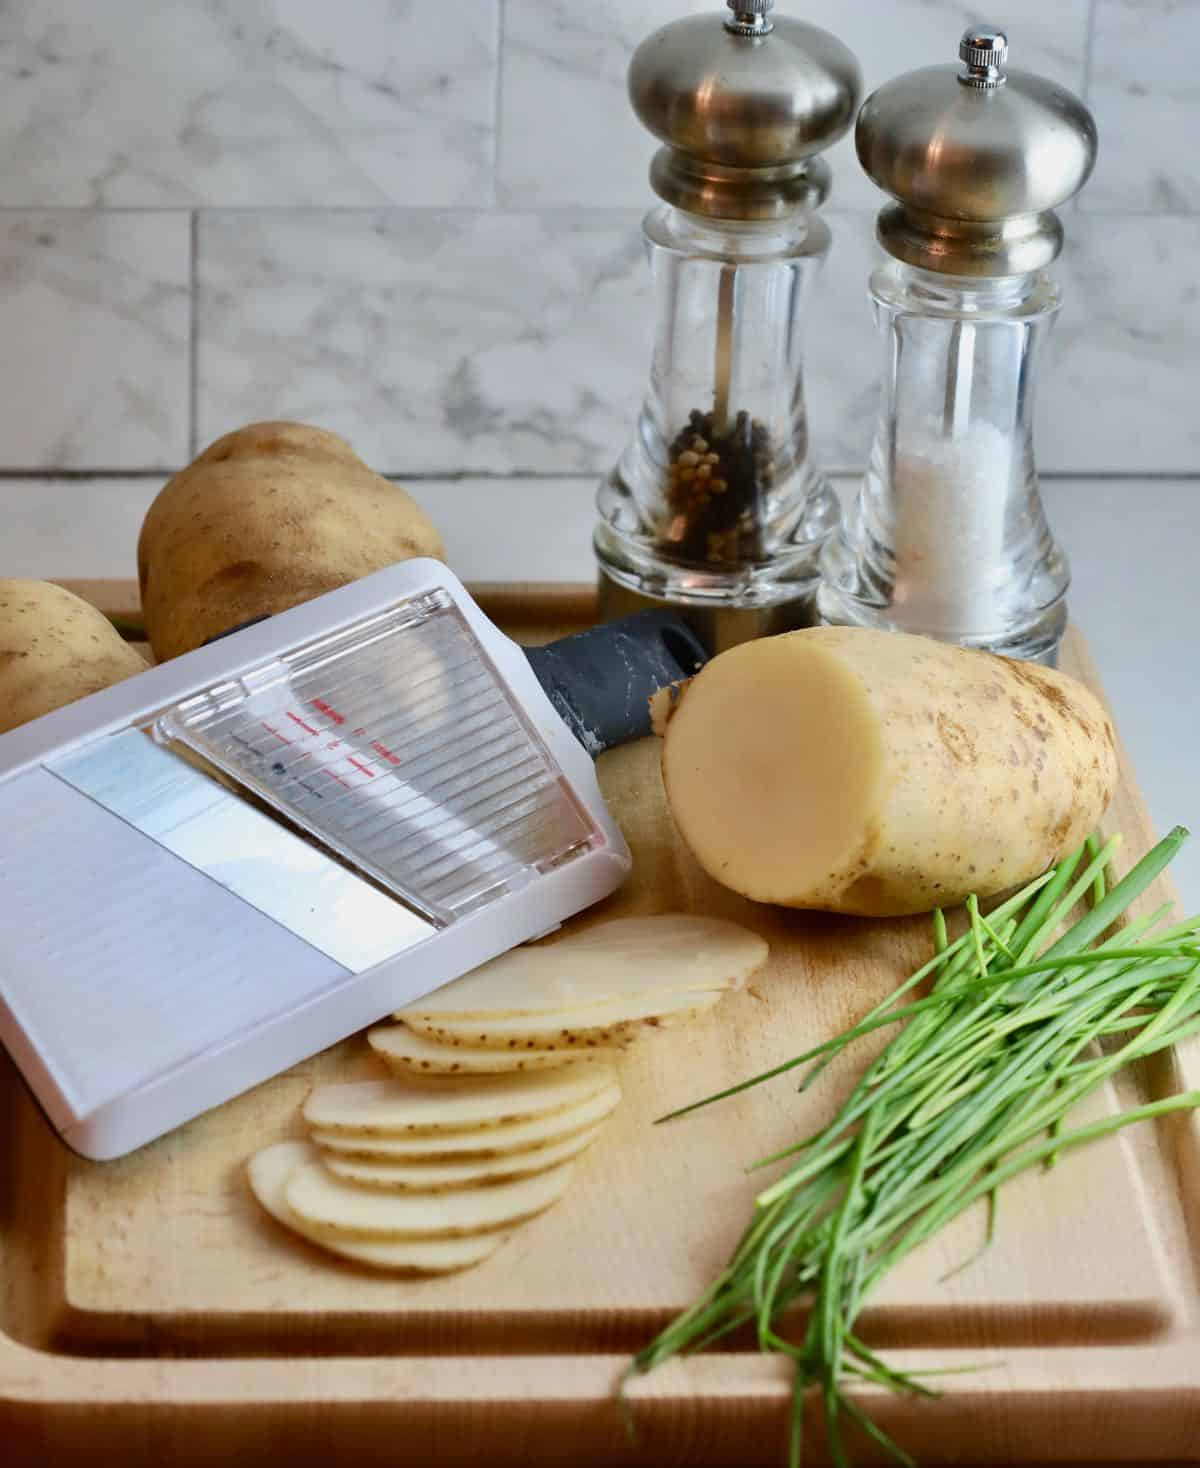 A mandoline with sliced potatoes on a cutting board.